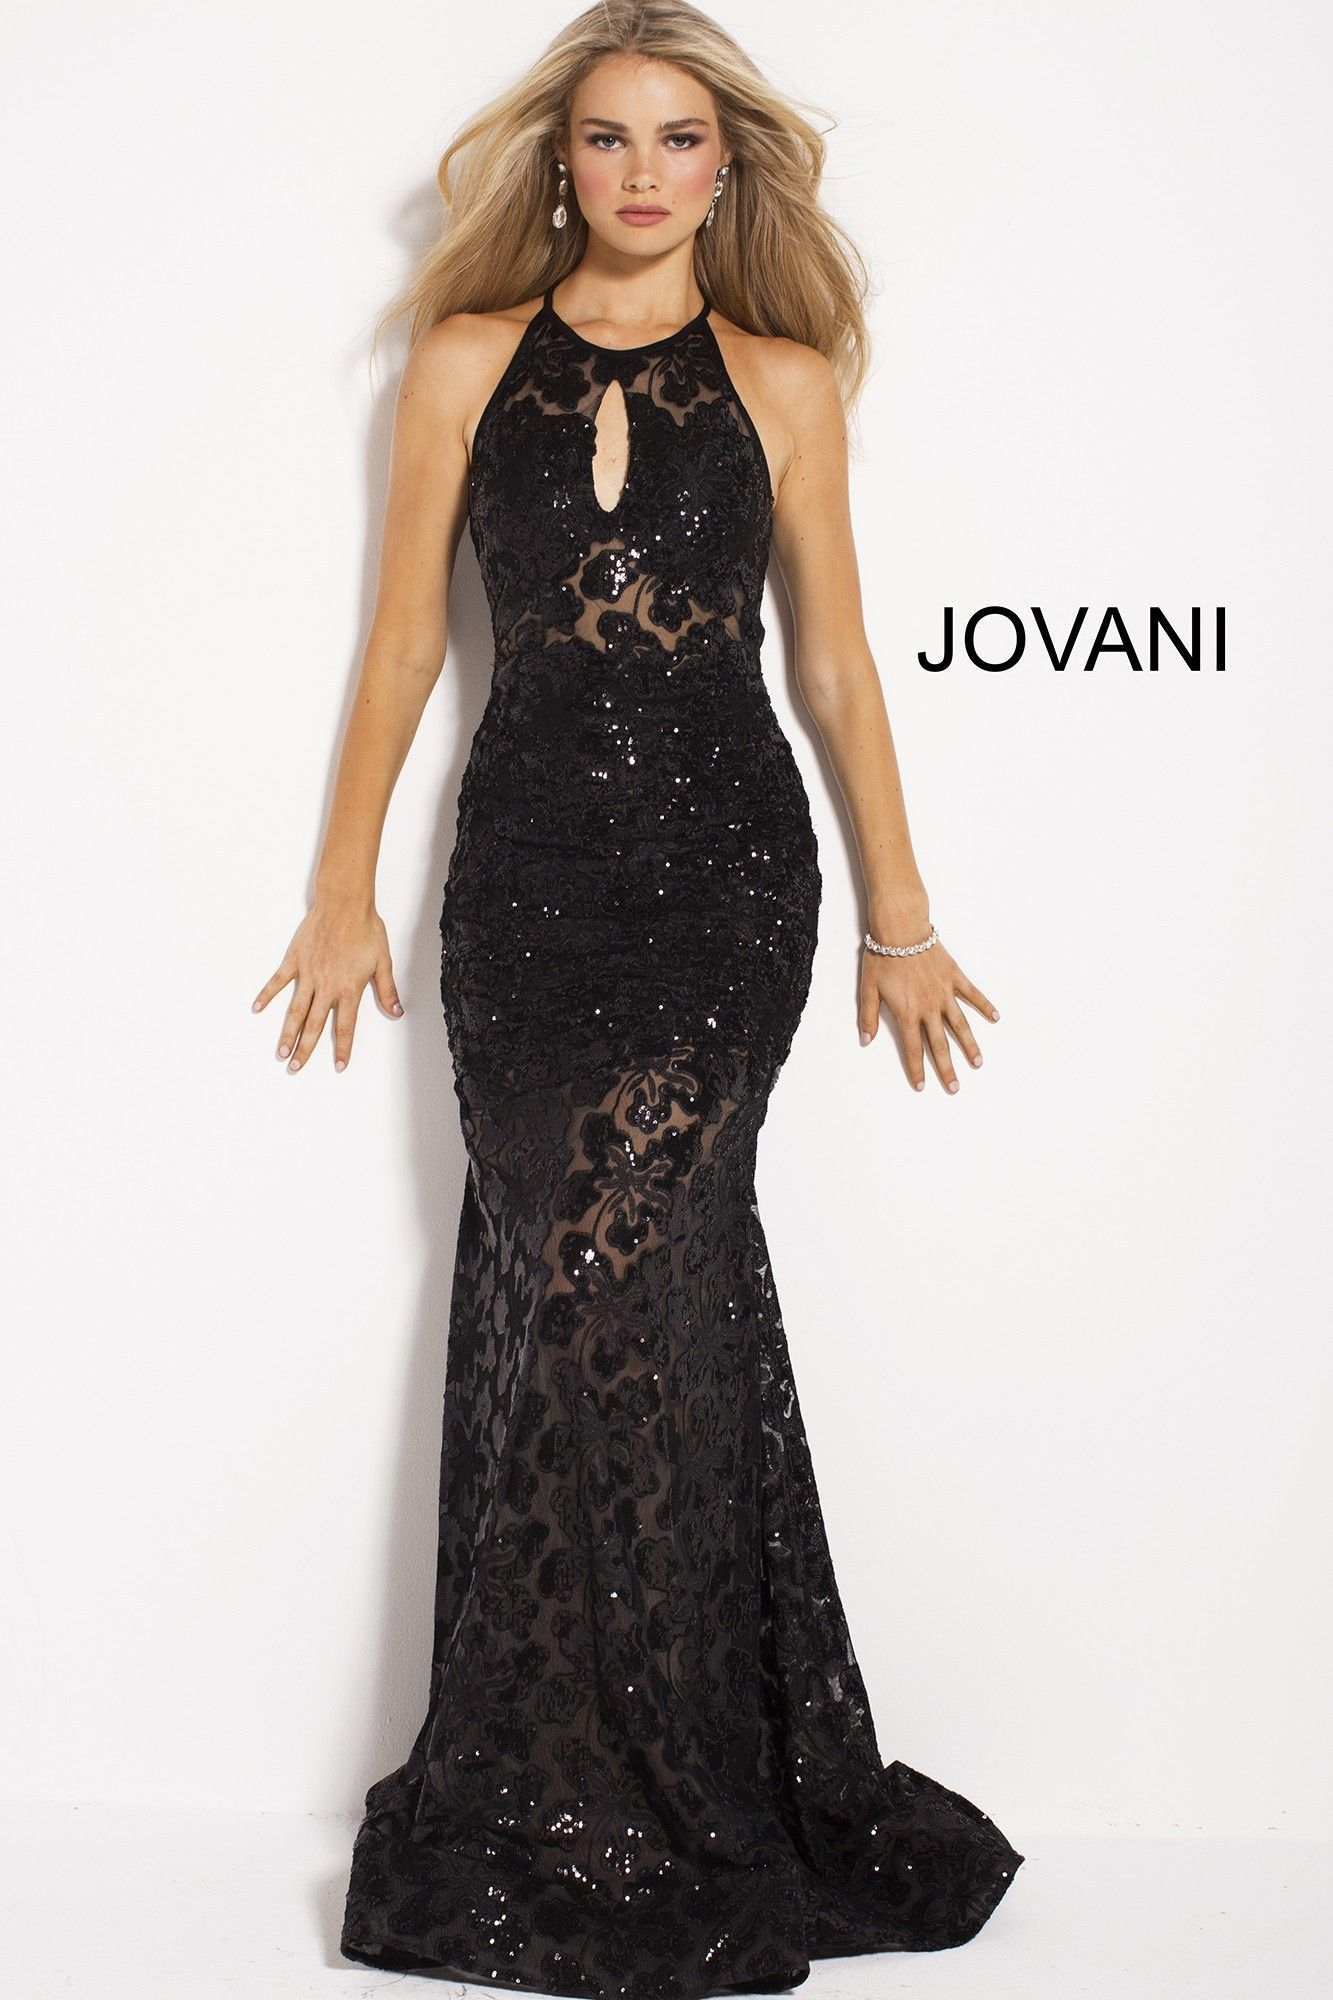 78127bb0 This mesmerizing illusion gown blossoms with a shimmering sequin floral  print. The sheer halter bodice has a high neckline, small keyhole opening  on the ...